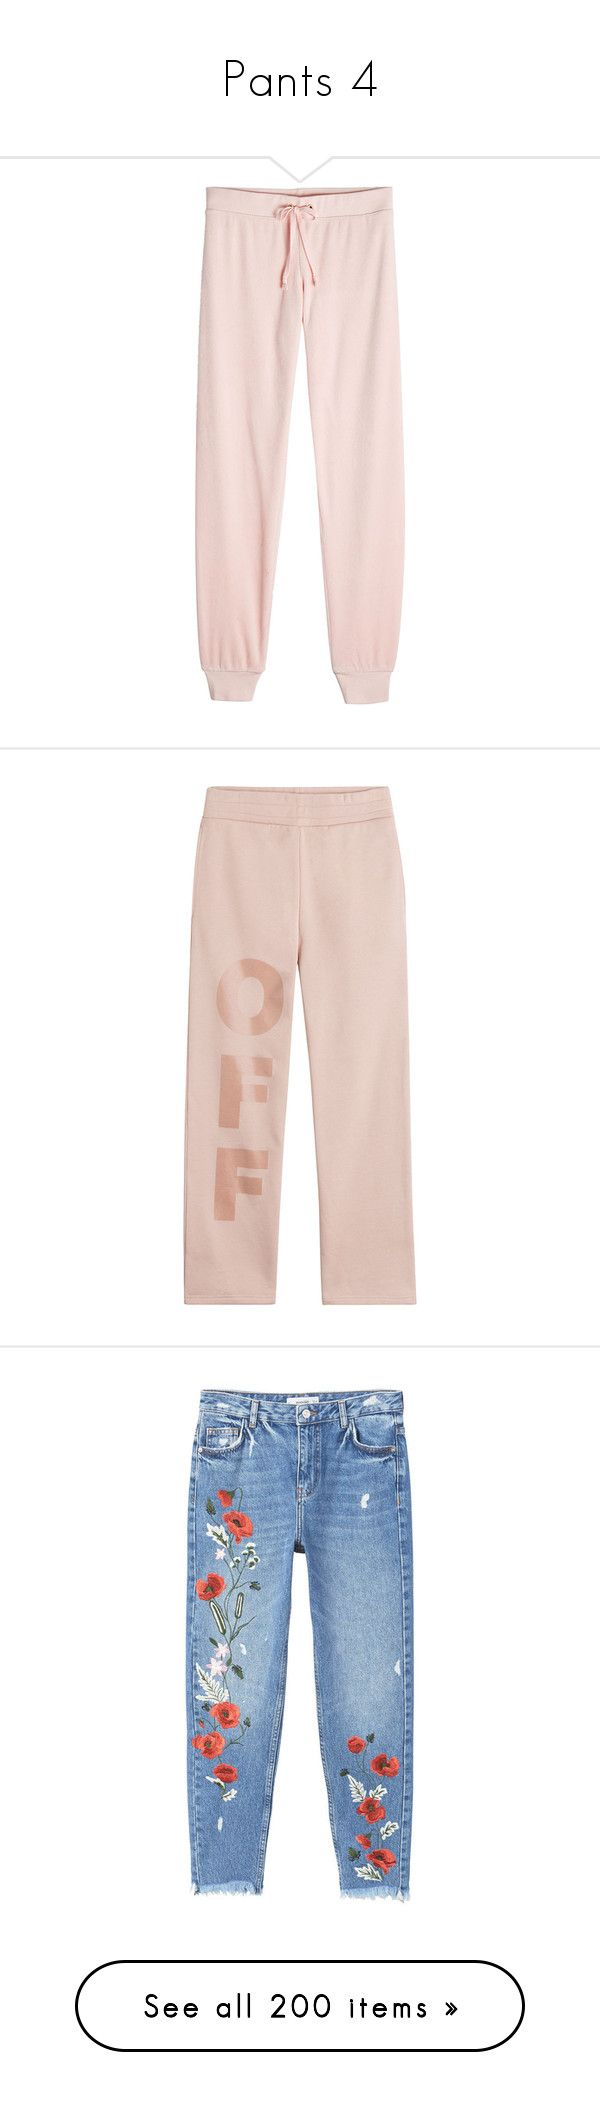 """""""Pants 4"""" by lashanna-bing ❤ liked on Polyvore featuring activewear, activewear pants, pants, pantalon, magenta, juicy couture sportswear, juicy couture, pink activewear, track pants and pink sportswear"""